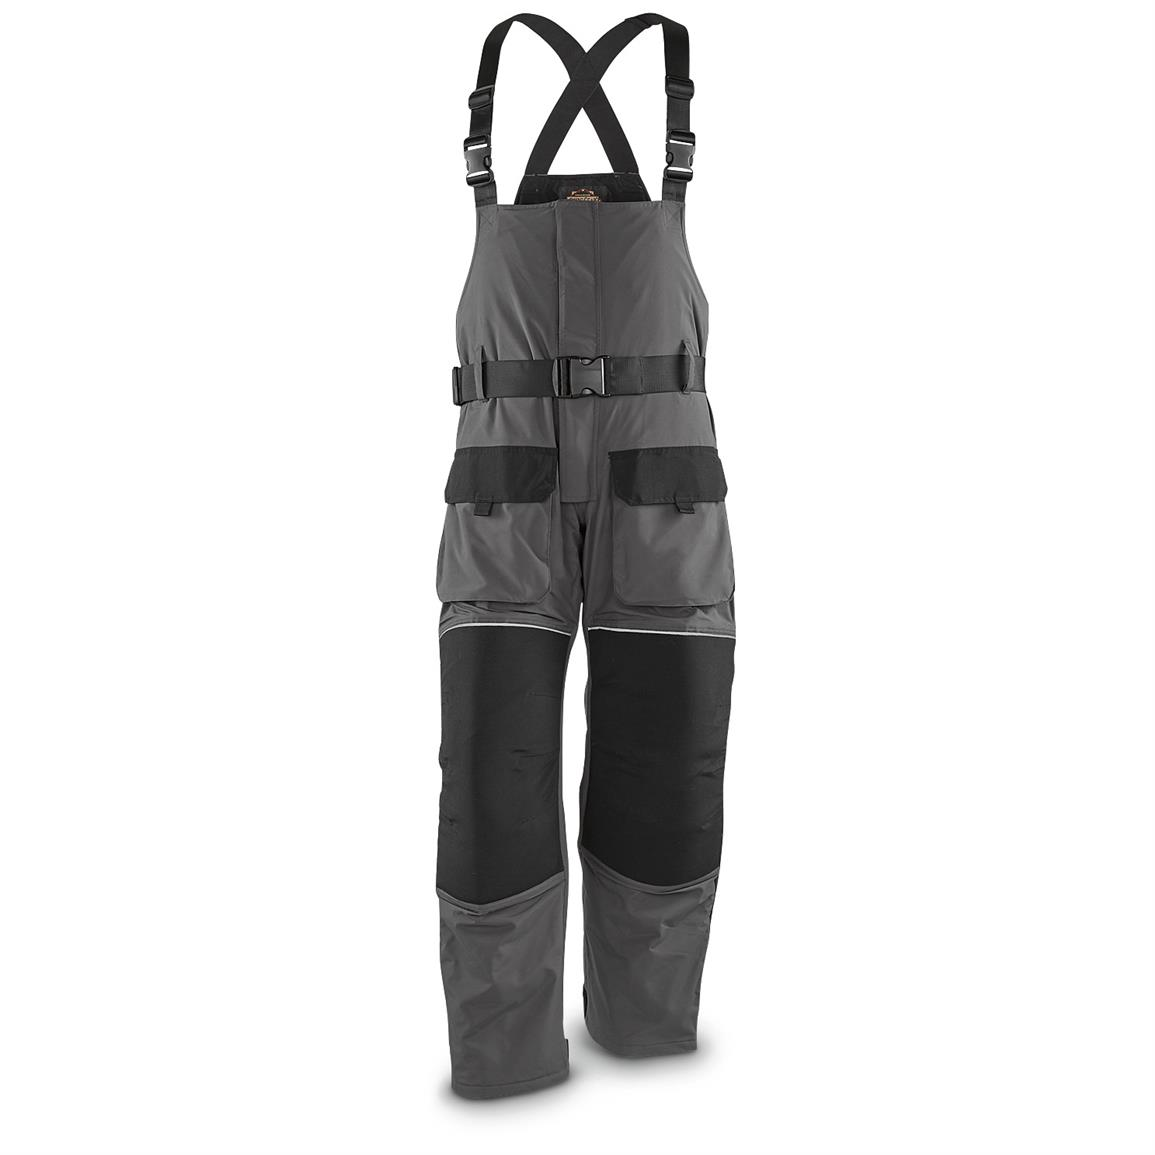 Guide Gear Men S Cold Weather Insulated Waterproof Bibs